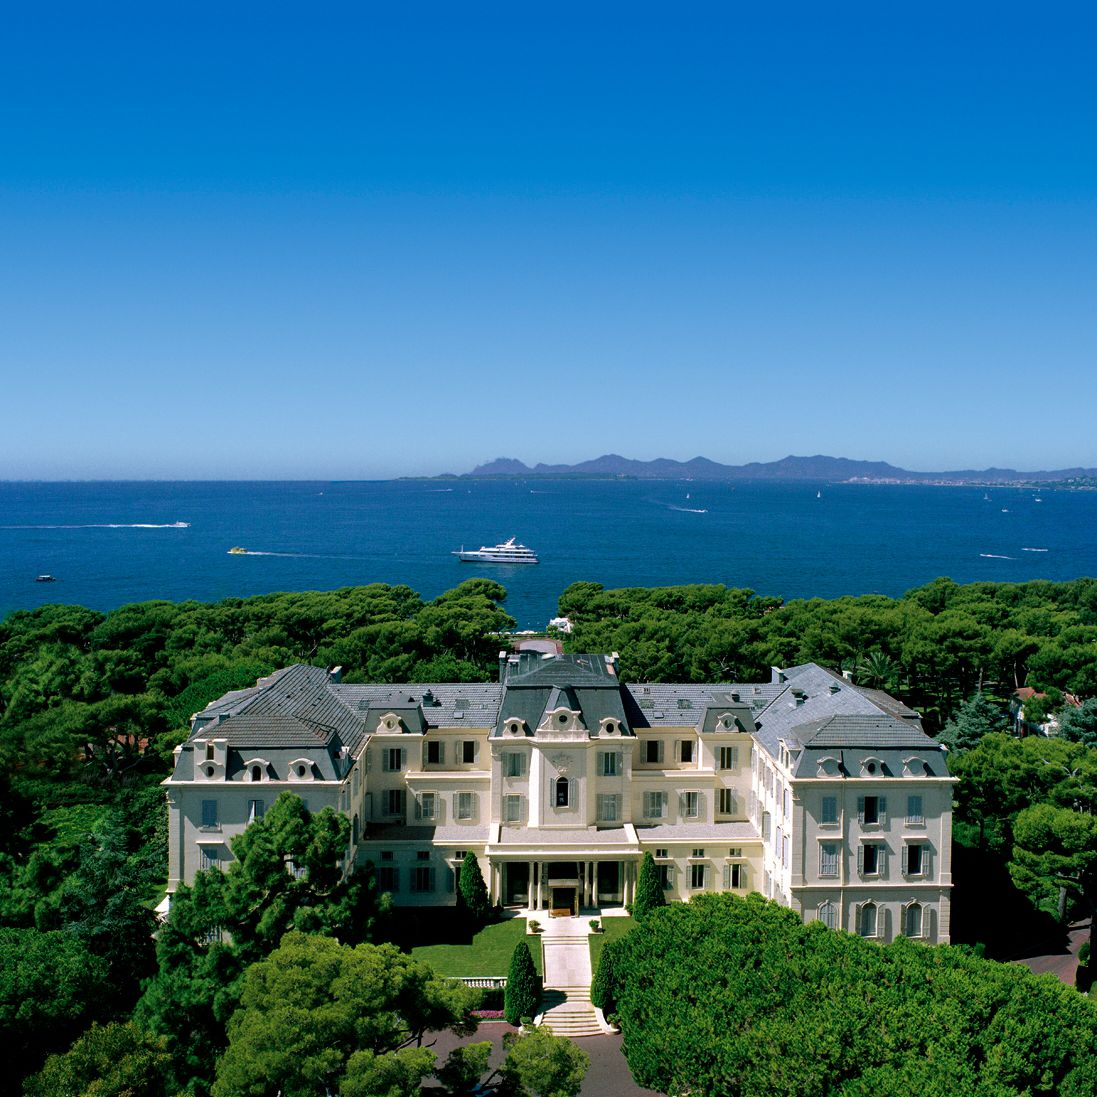 Hotels In Antibes On The French Riviera